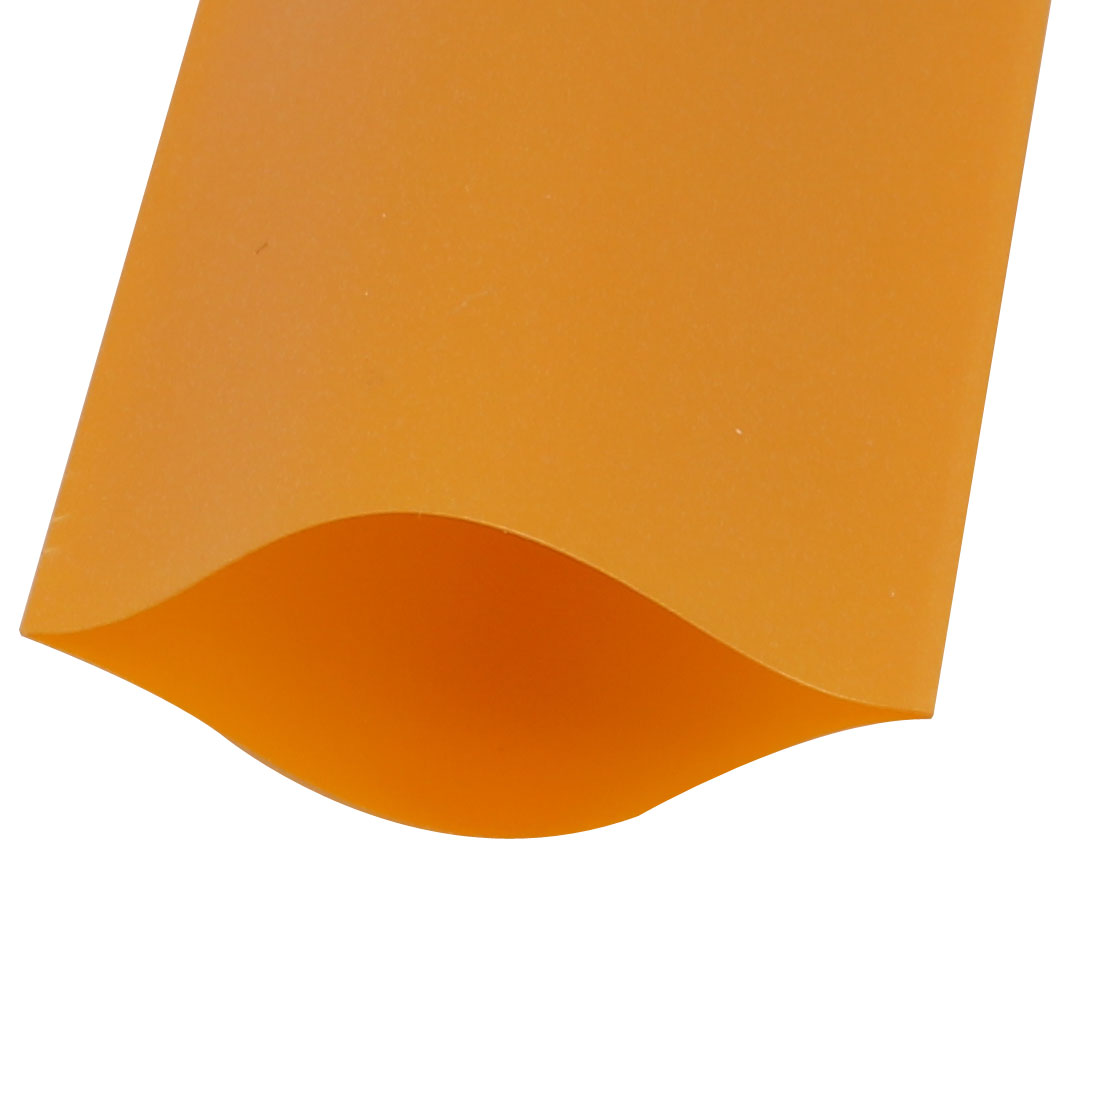 Unique Bargains 29.5mm Flat Width 6M Length PVC Heat Shrinkable Tube Gold Tone for 18650 Battery - image 1 of 3